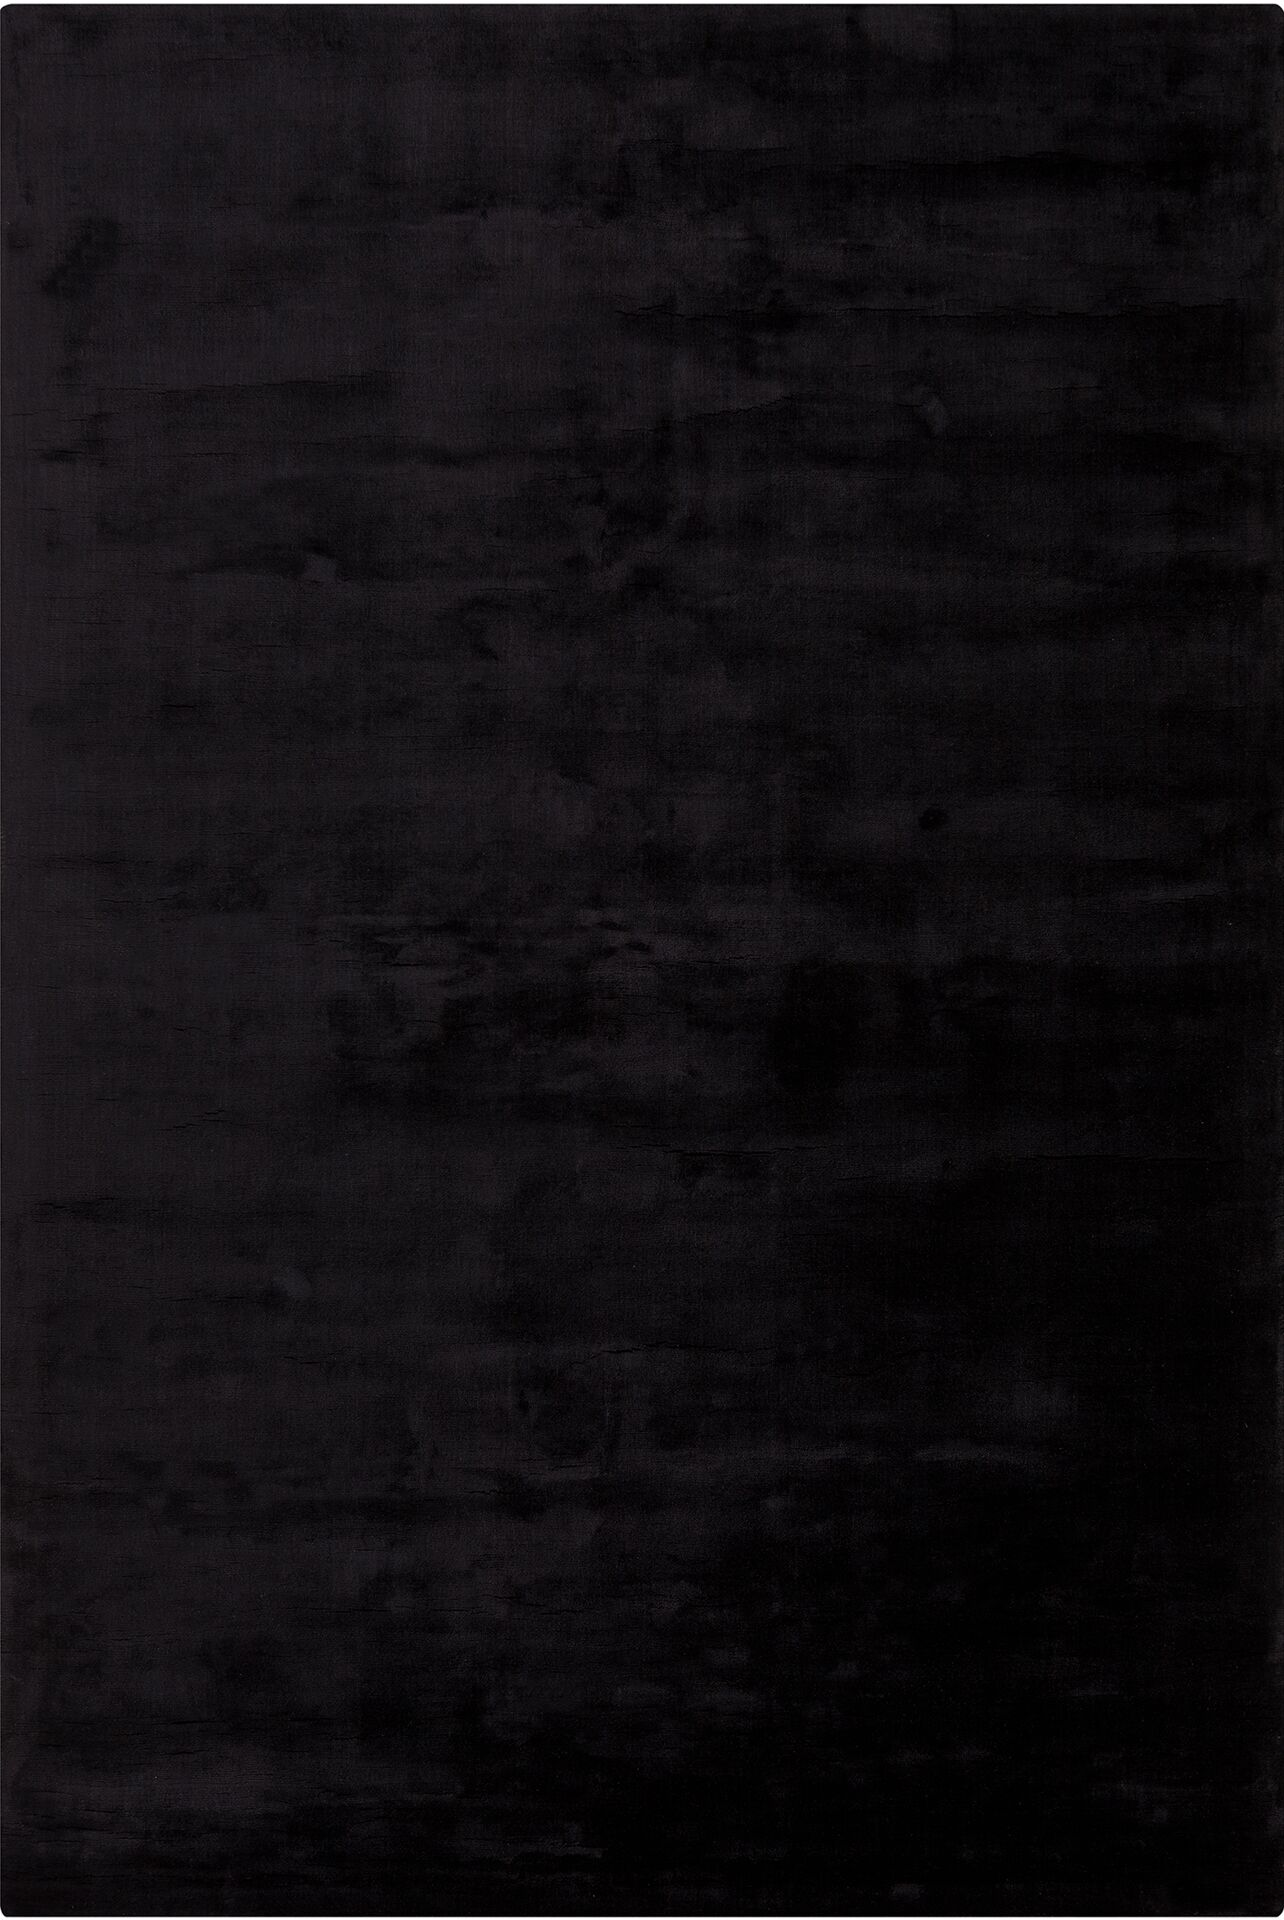 Mabel Hand Woven Black Area Rug Rug Size: Rectangle 9' x 13'